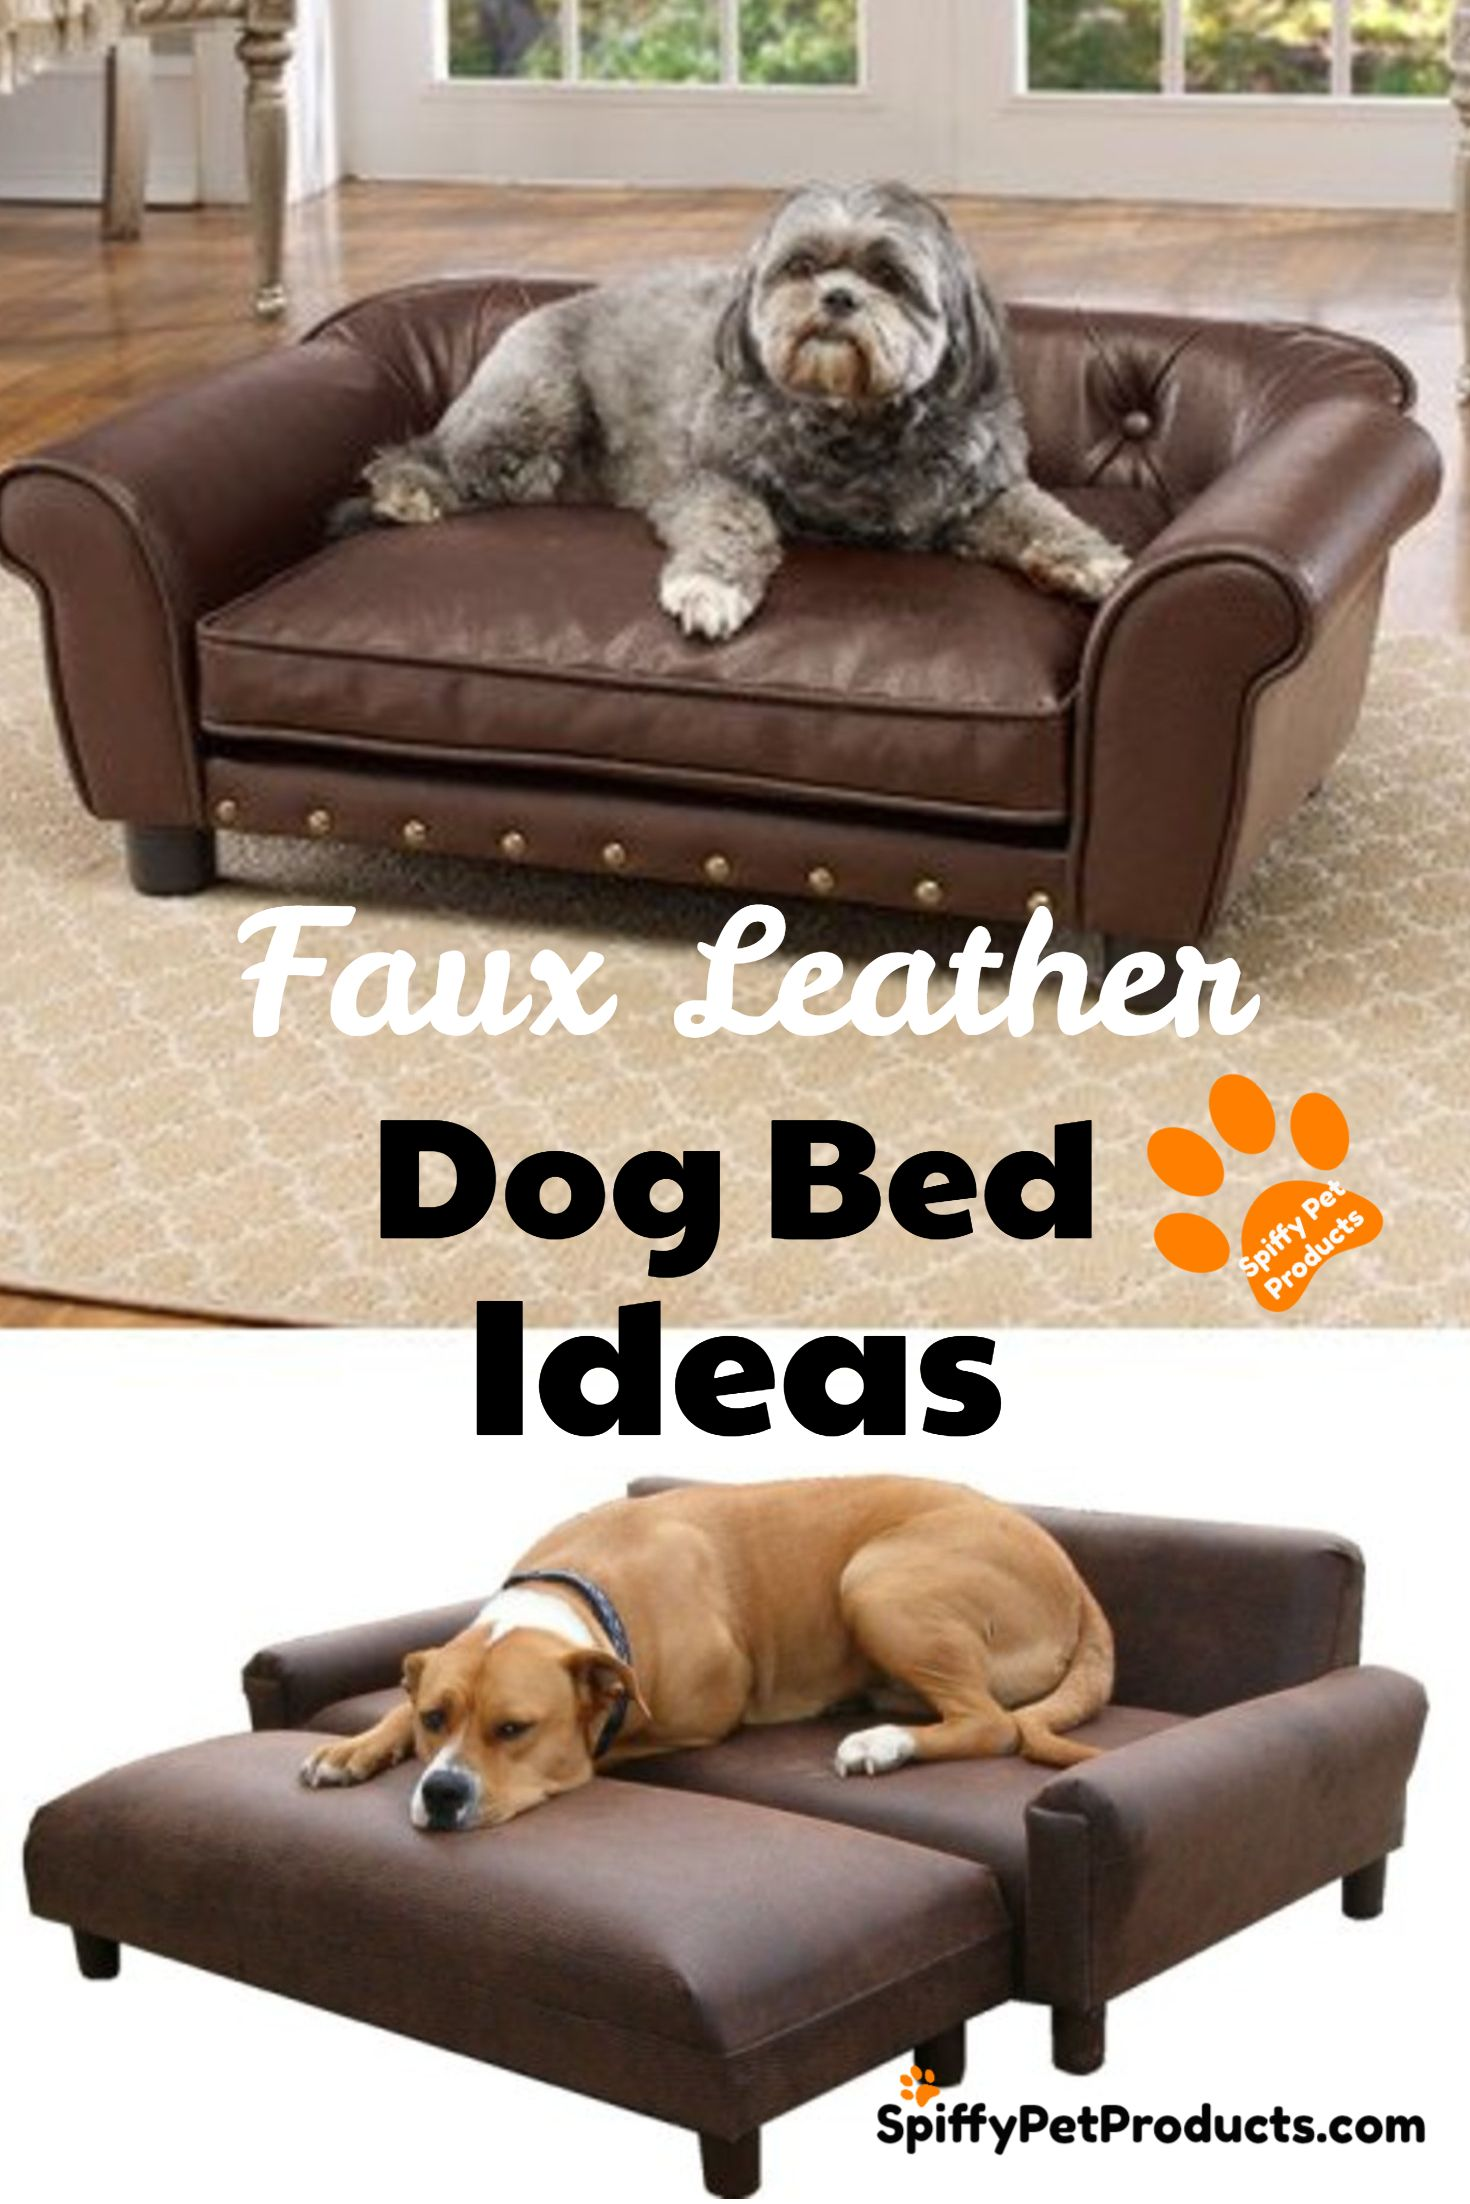 Faux Leather Dog Bed Ideas   Faux Leather Dog Bed Ideas ...